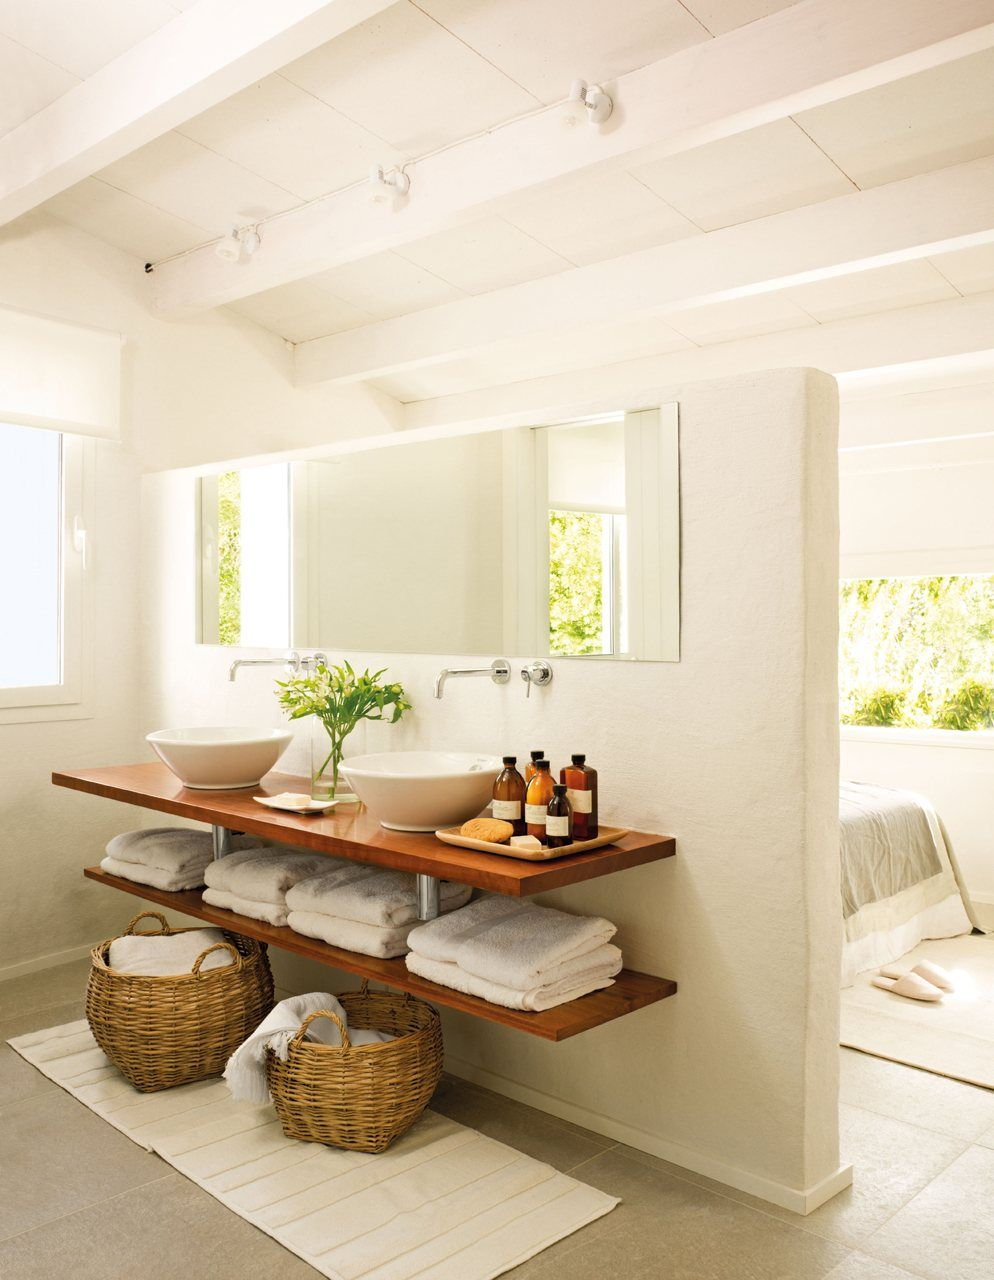 Assez Salle De Bain Beige Bois | Other rooms in the house | Pinterest  PY14